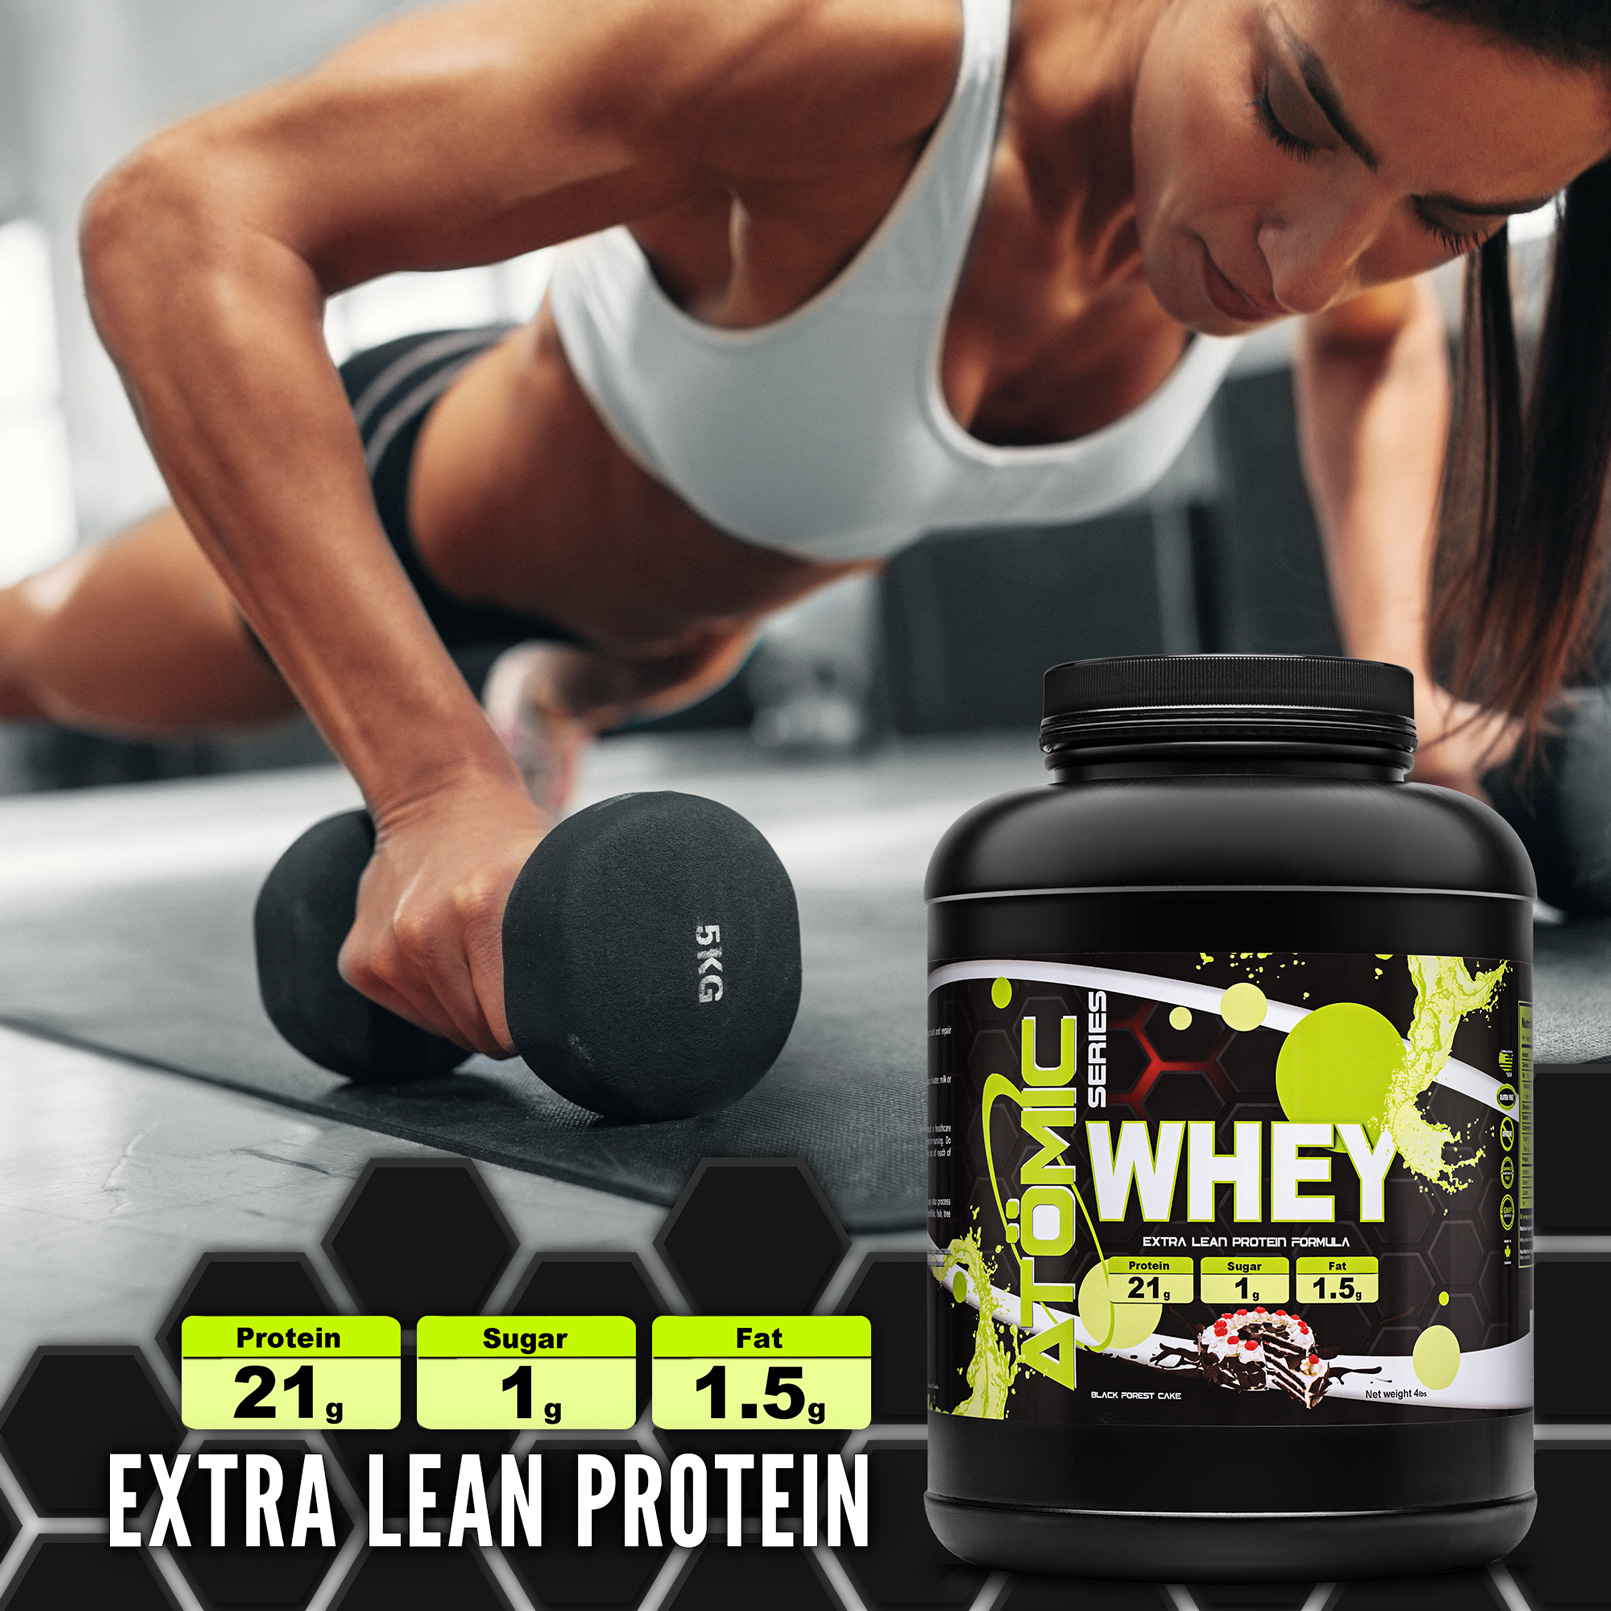 WHEY Female - Extra Lean Protein